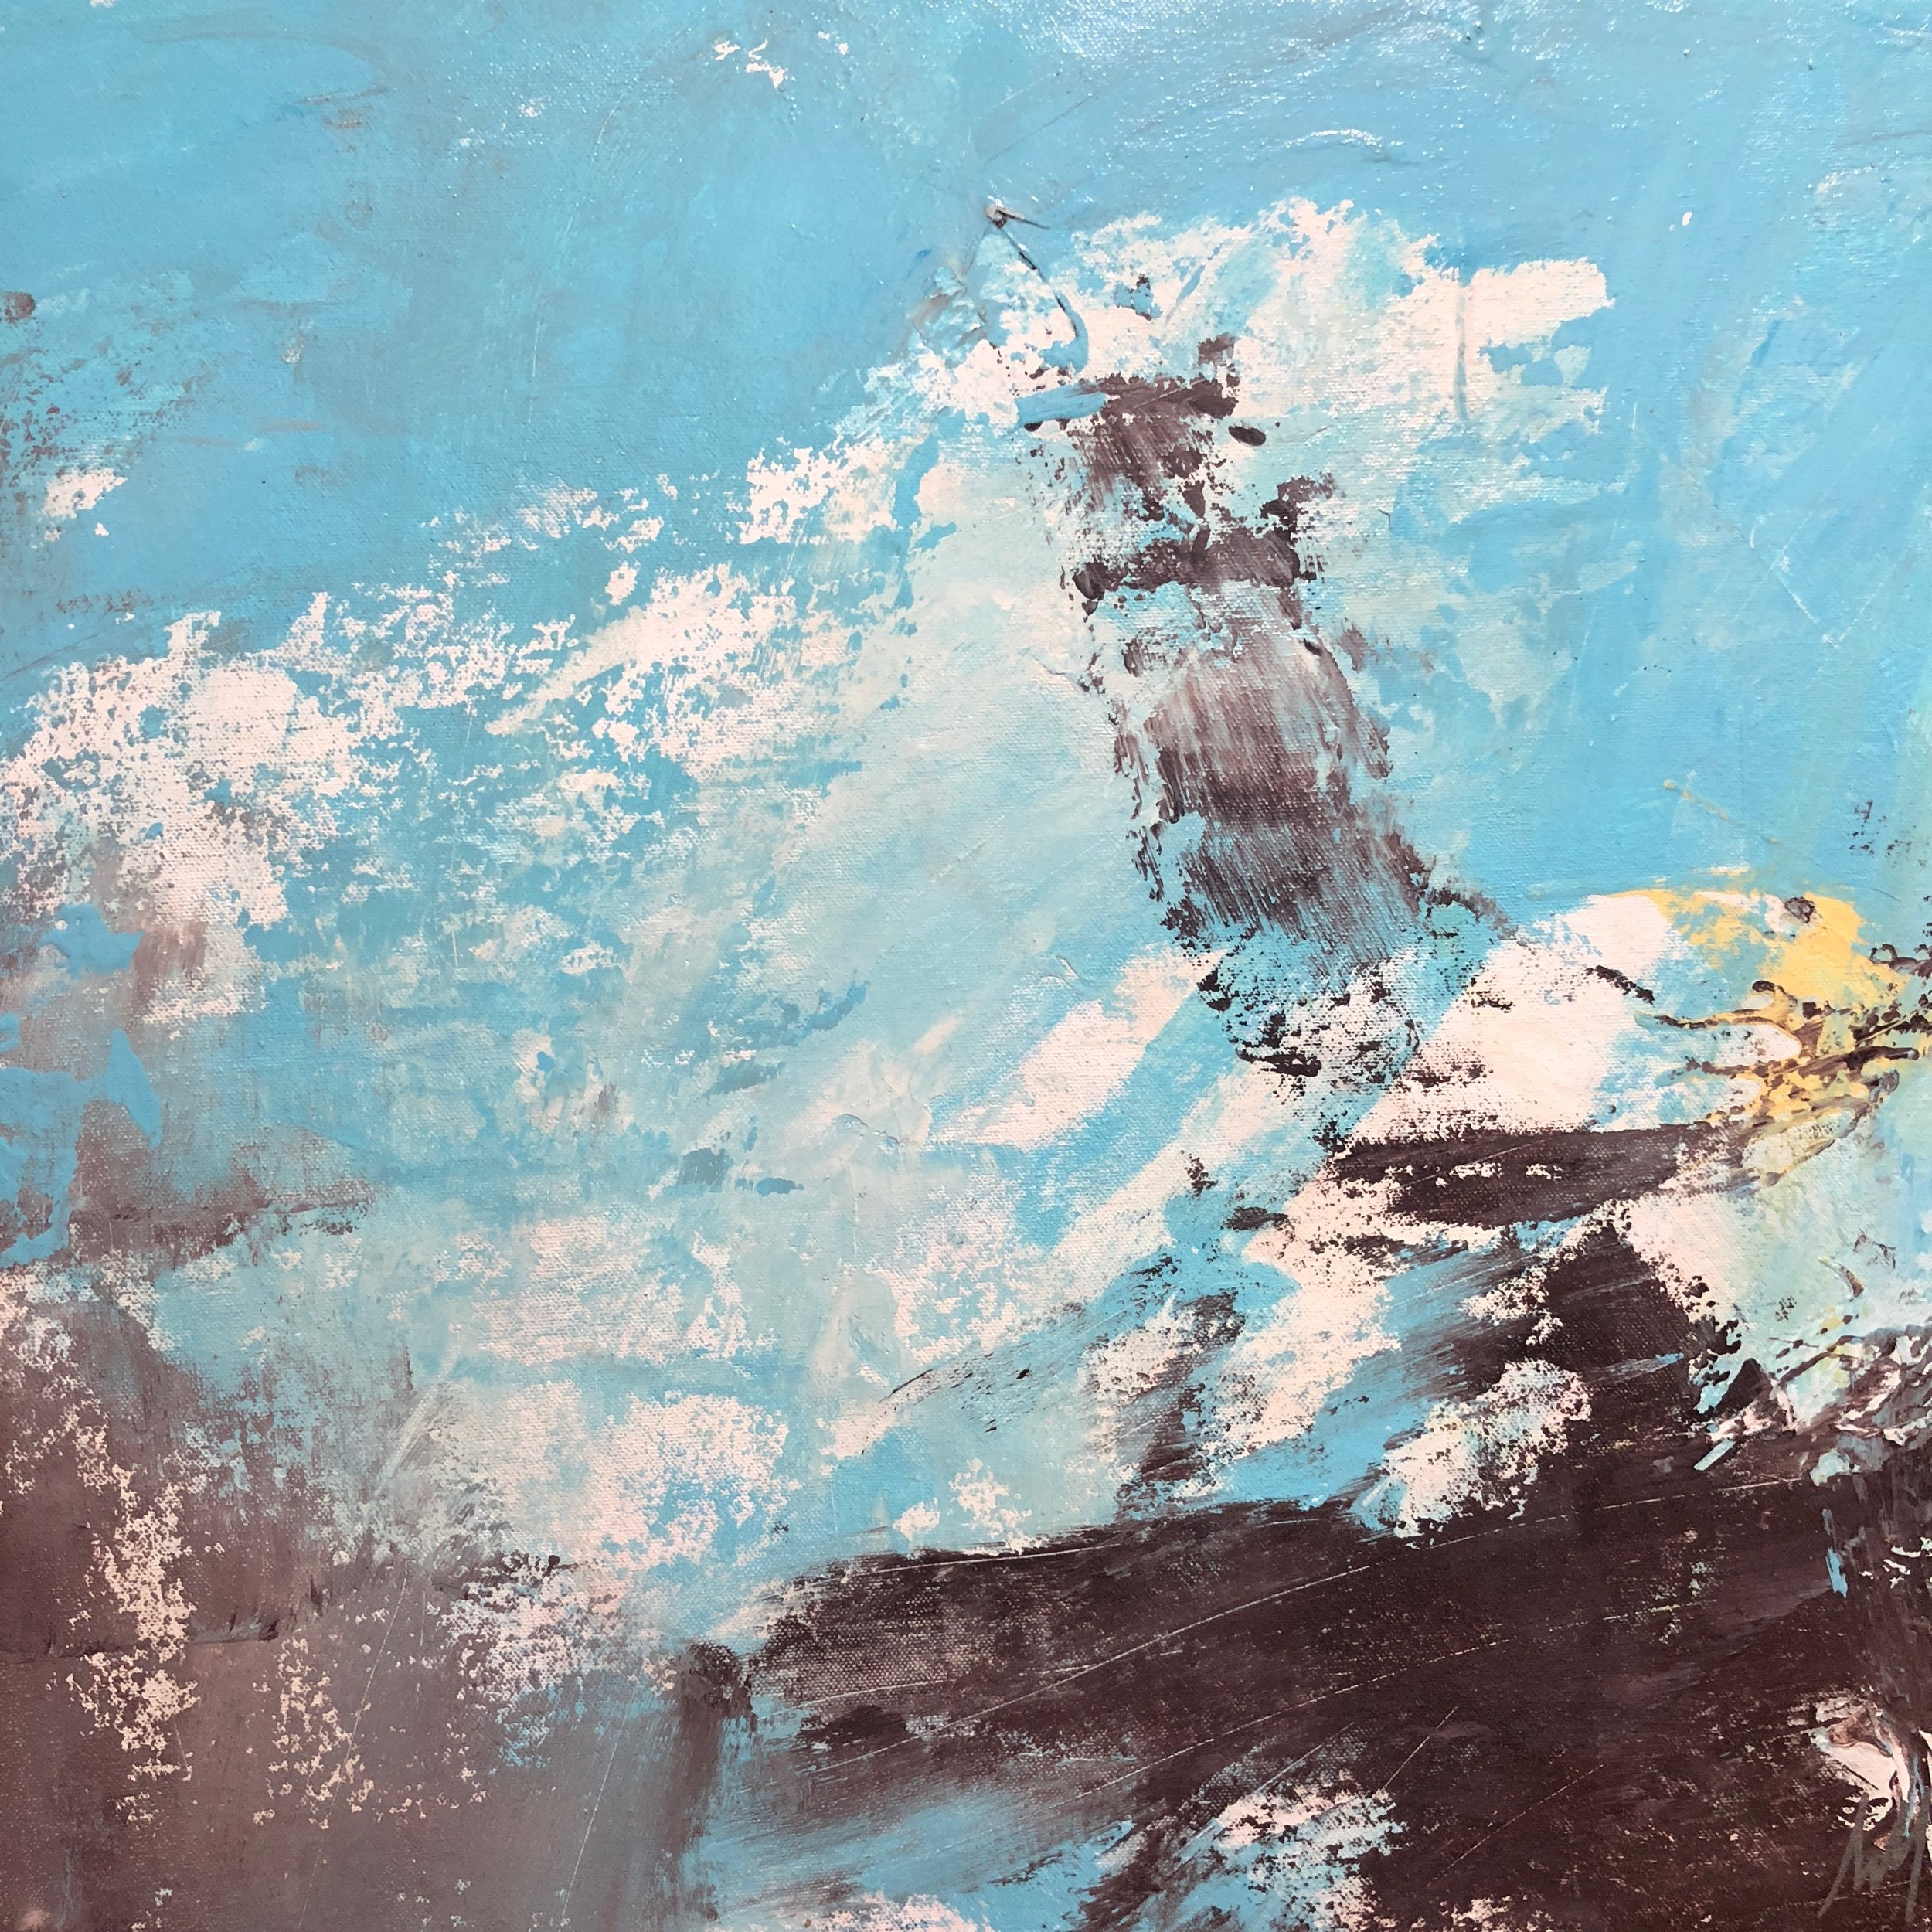 """Horizon - """"Horizon"""" is a beautiful pastel sky blue painting with wonderful calming gray and brown undertones. """"Horizon"""" pushes past boundaries with its movement and texture, symbolizing a beautiful blue horizon radiating peace and possibility."""